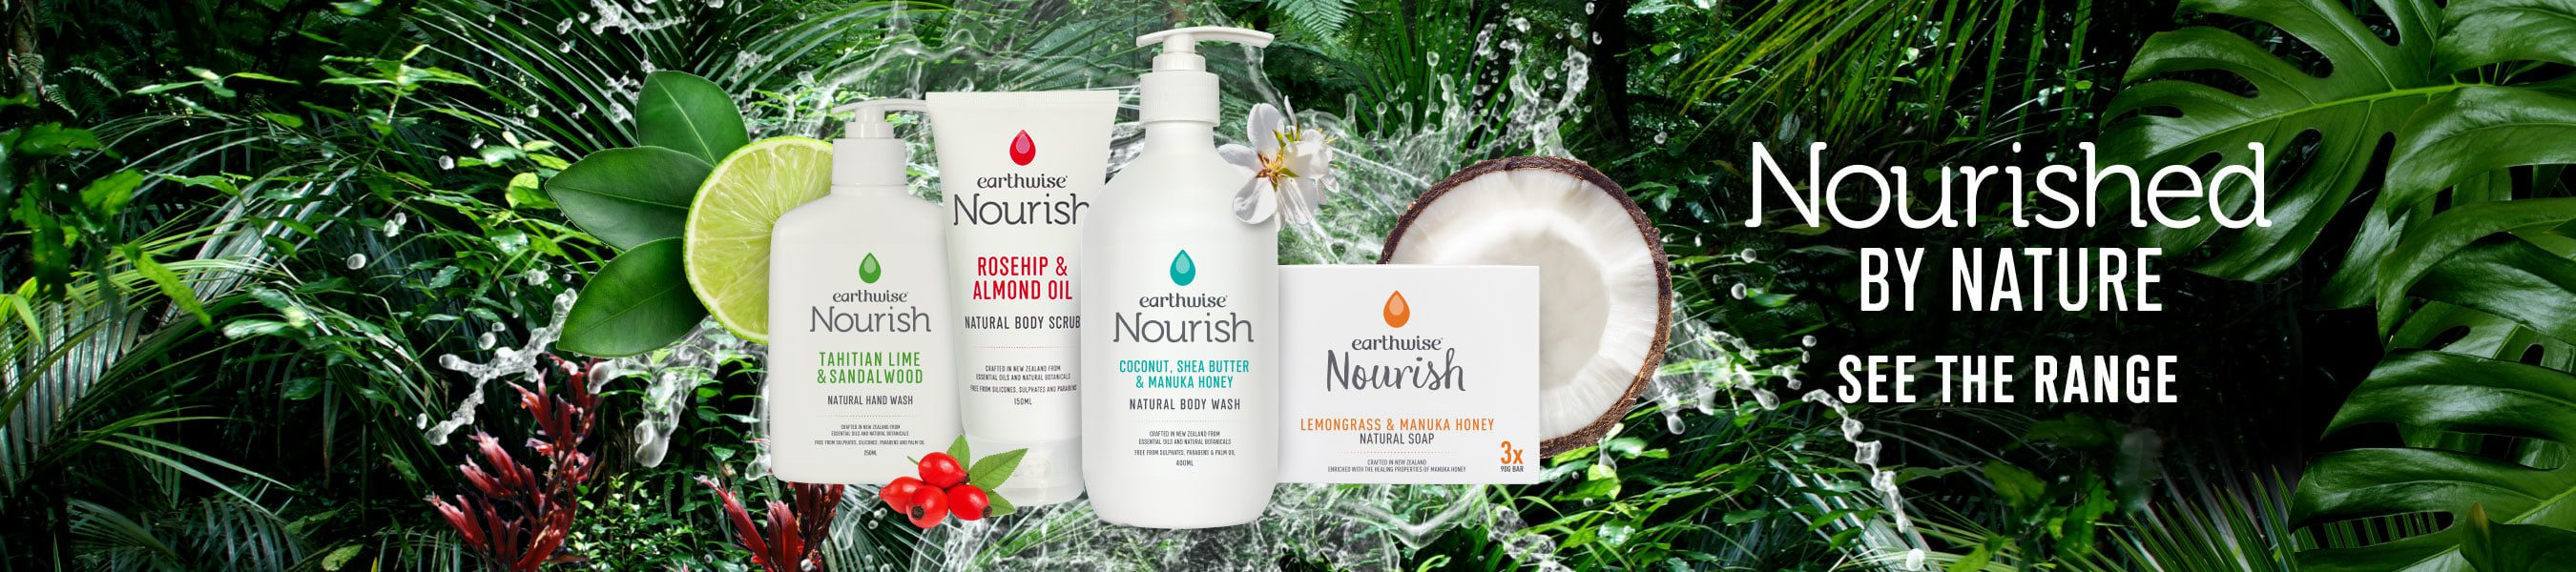 Earthwise Nourish Natural Body Range